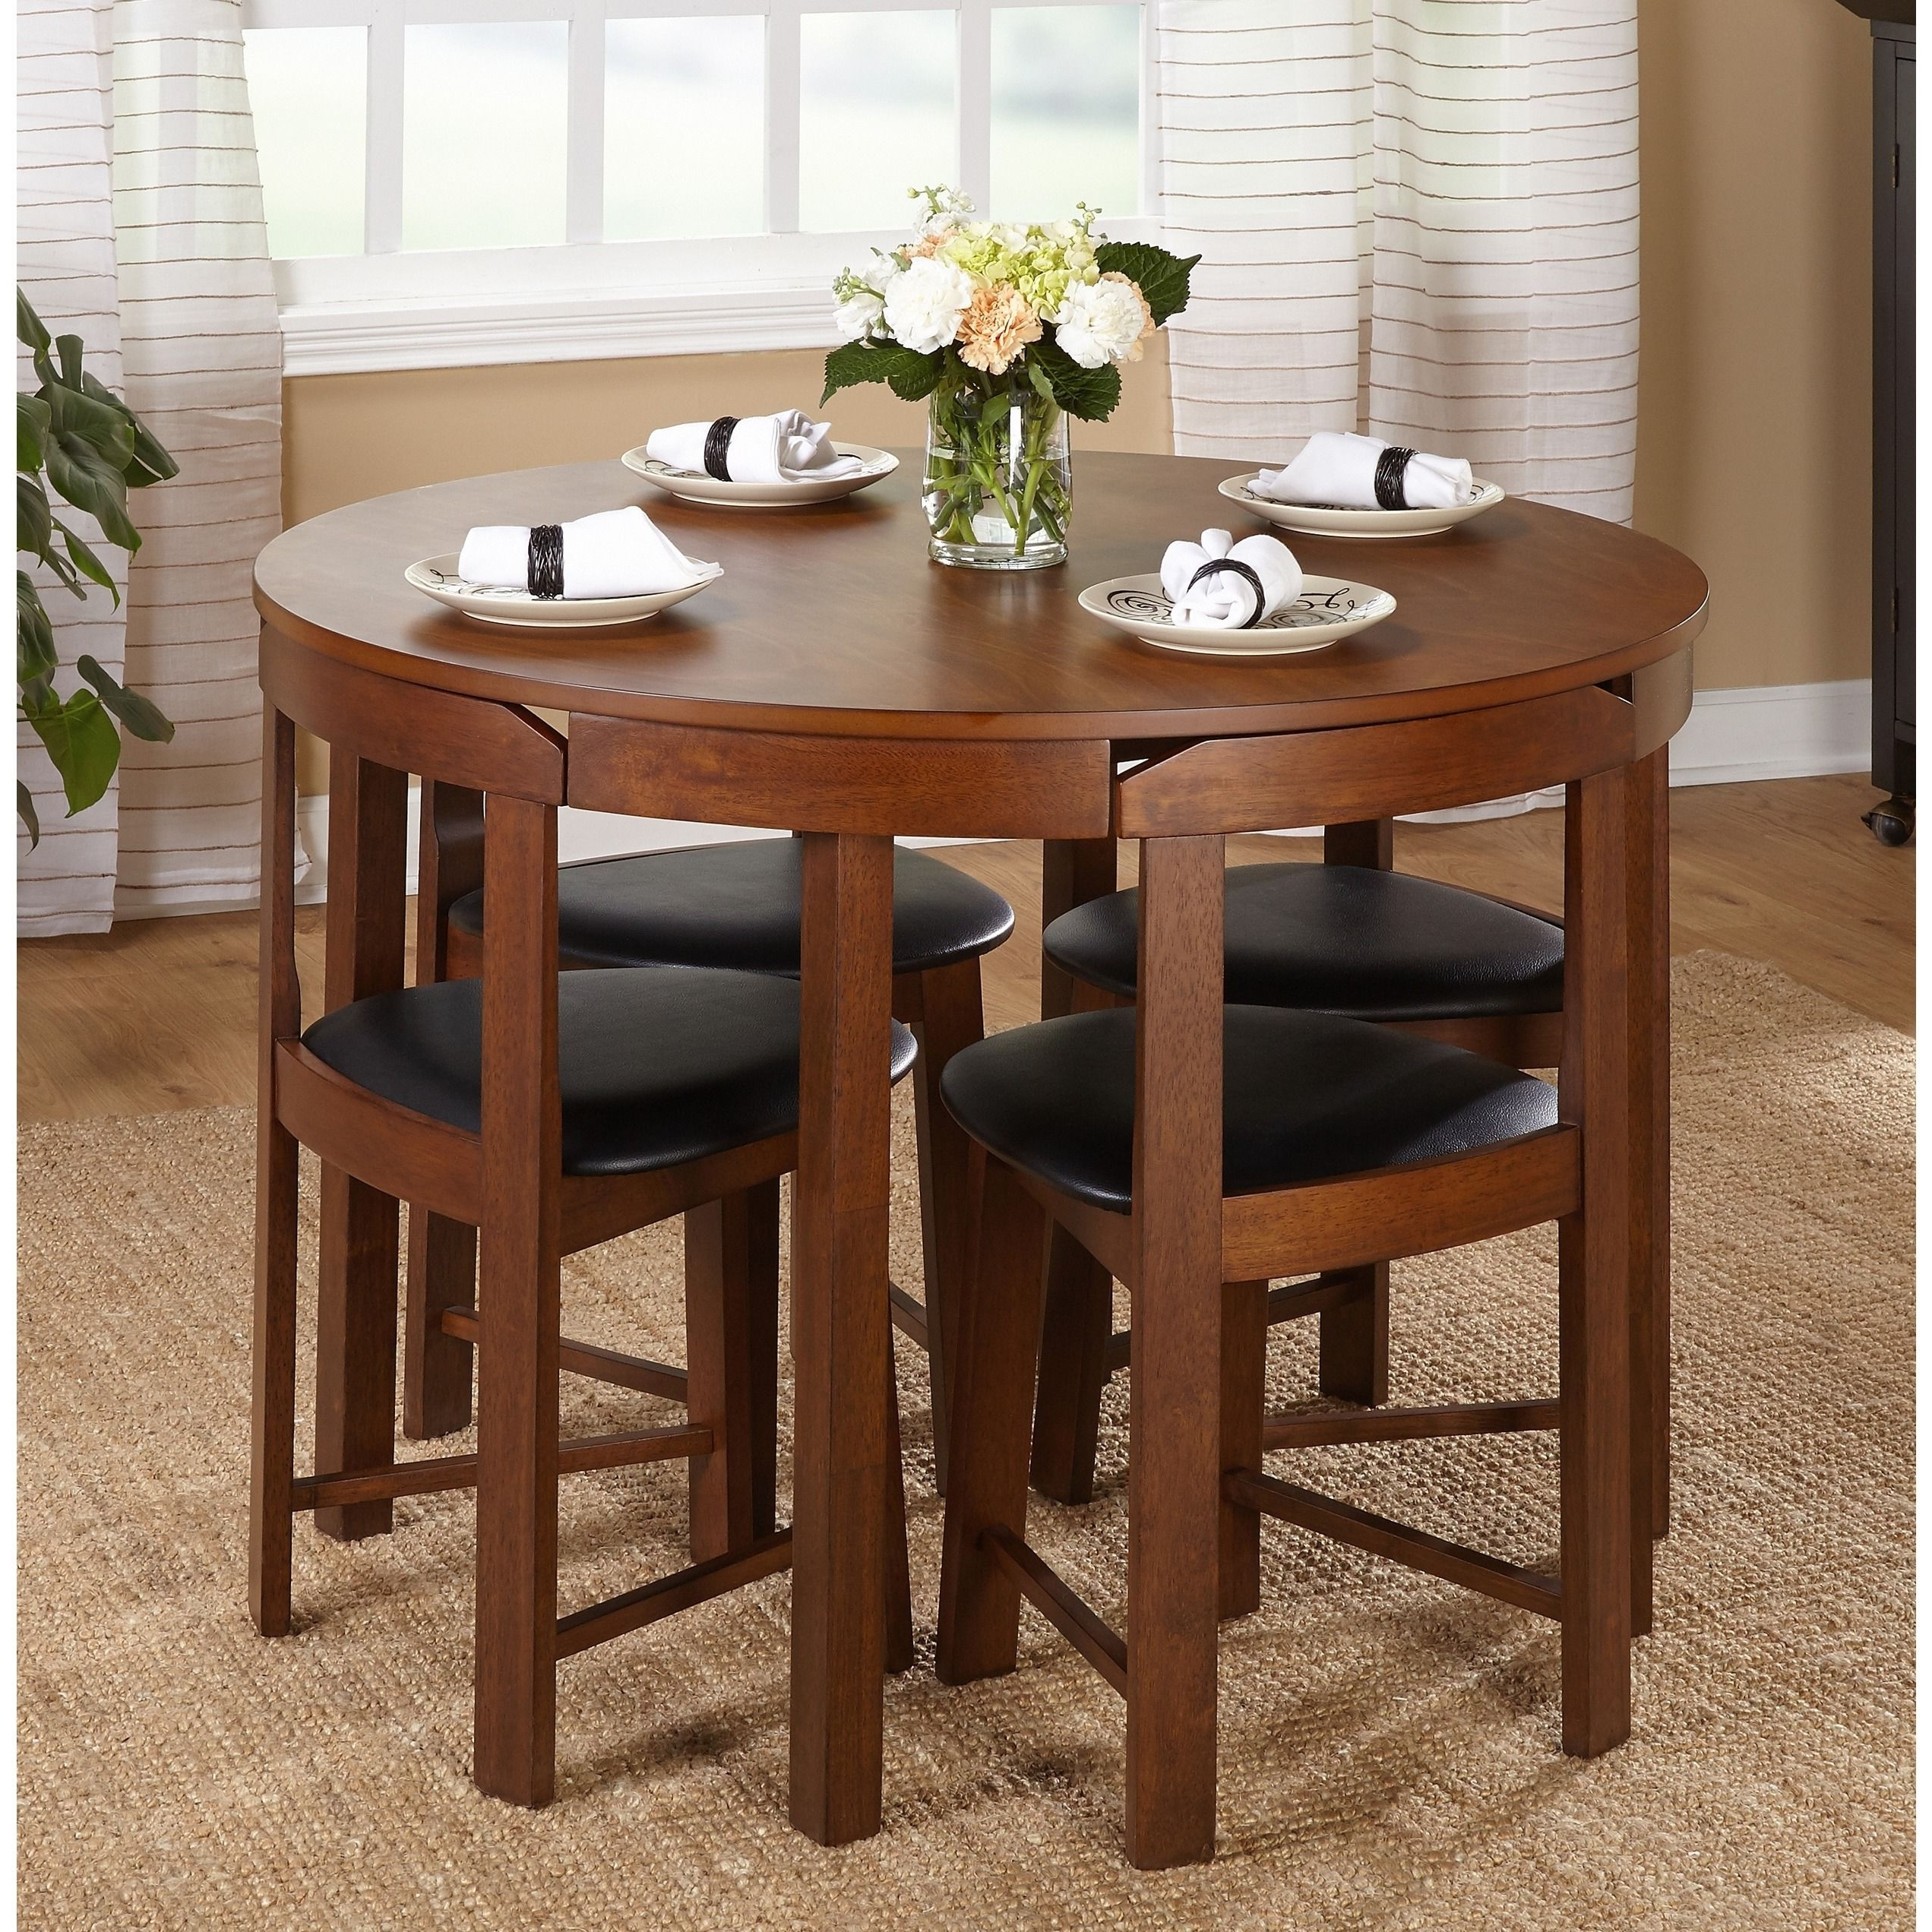 Preferred Valencia 5 Piece 60 Inch Round Dining Sets Pertaining To The 5 Piece Tobey Compact Dining Setsimple Living Offers Four (View 14 of 25)